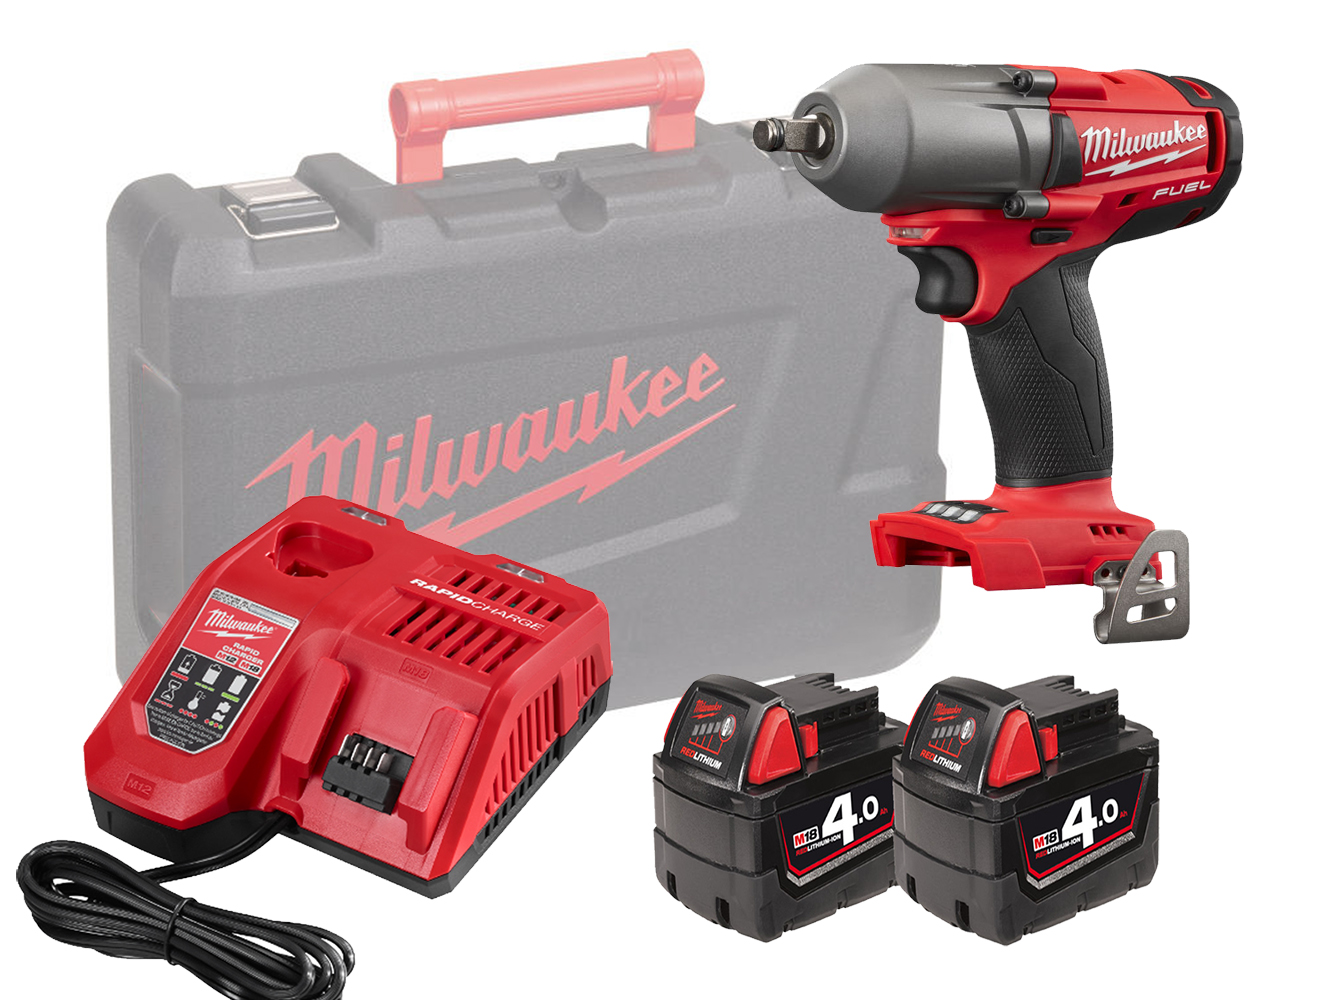 Milwaukee M18FMTIWF12 18V 1/2In Mid Torque Impact Wrench - 4.0Ah Pack